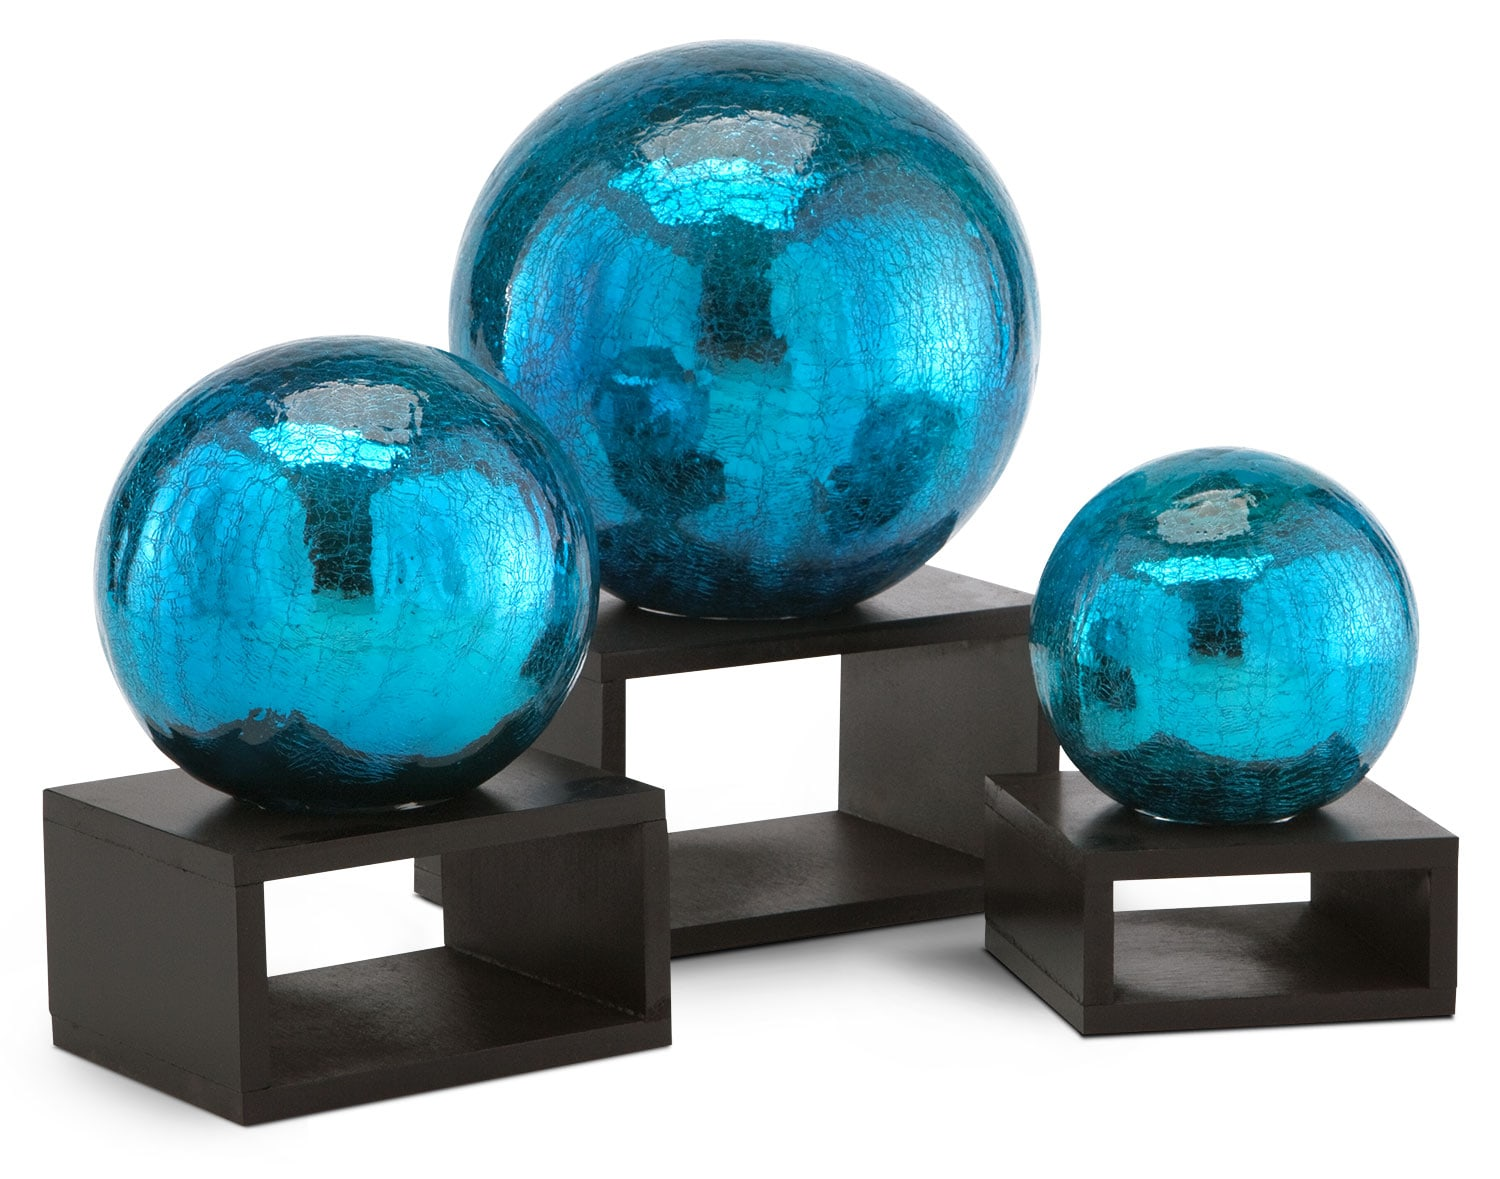 Set of 3 Crackle Balls with Stands - Turquoise